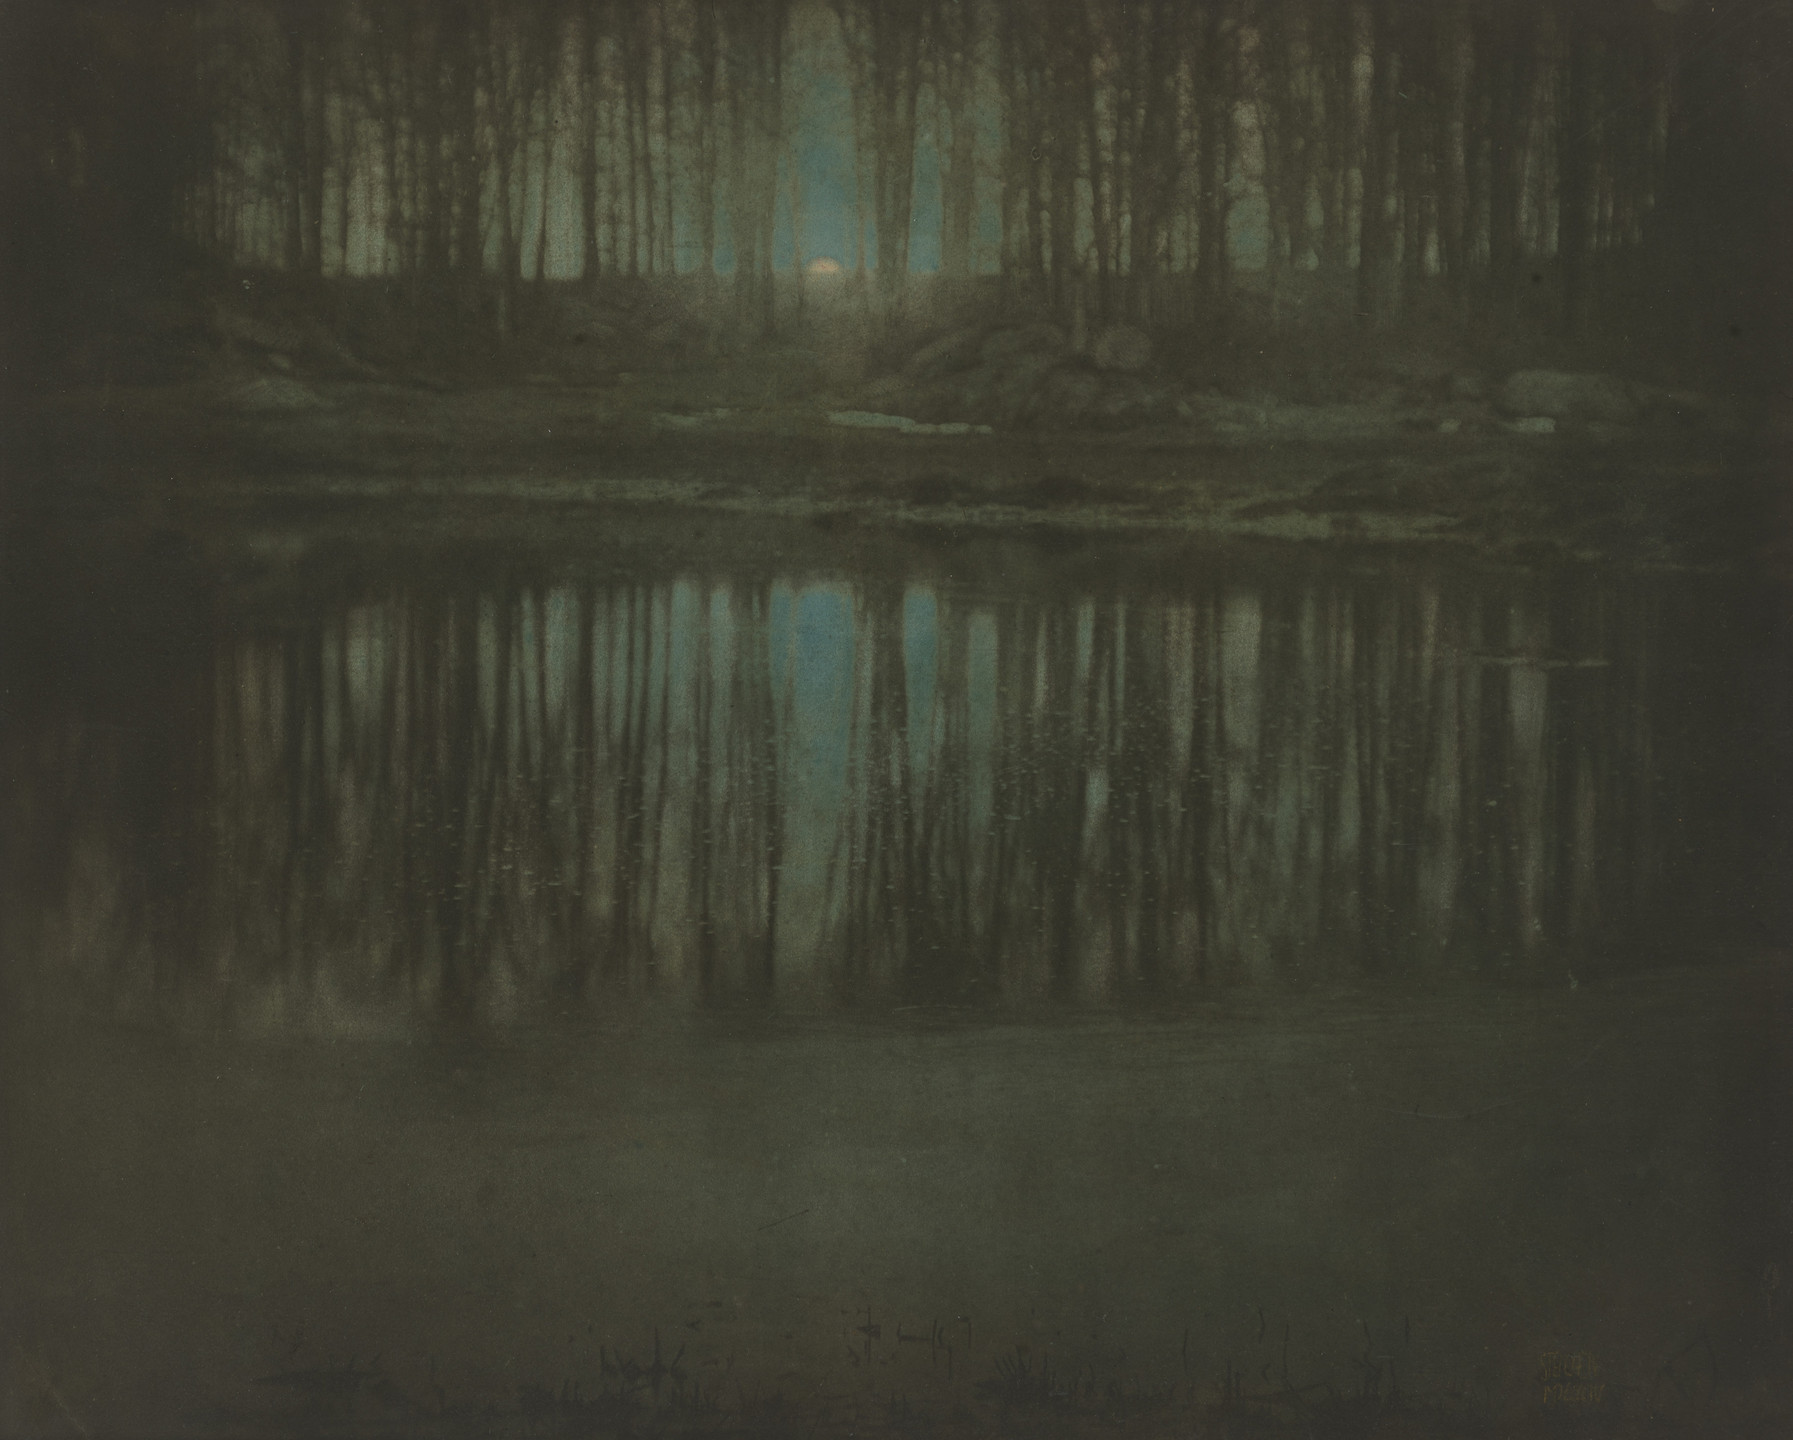 Edward Steichen. Moonrise—Mamaroneck, New York. 1904